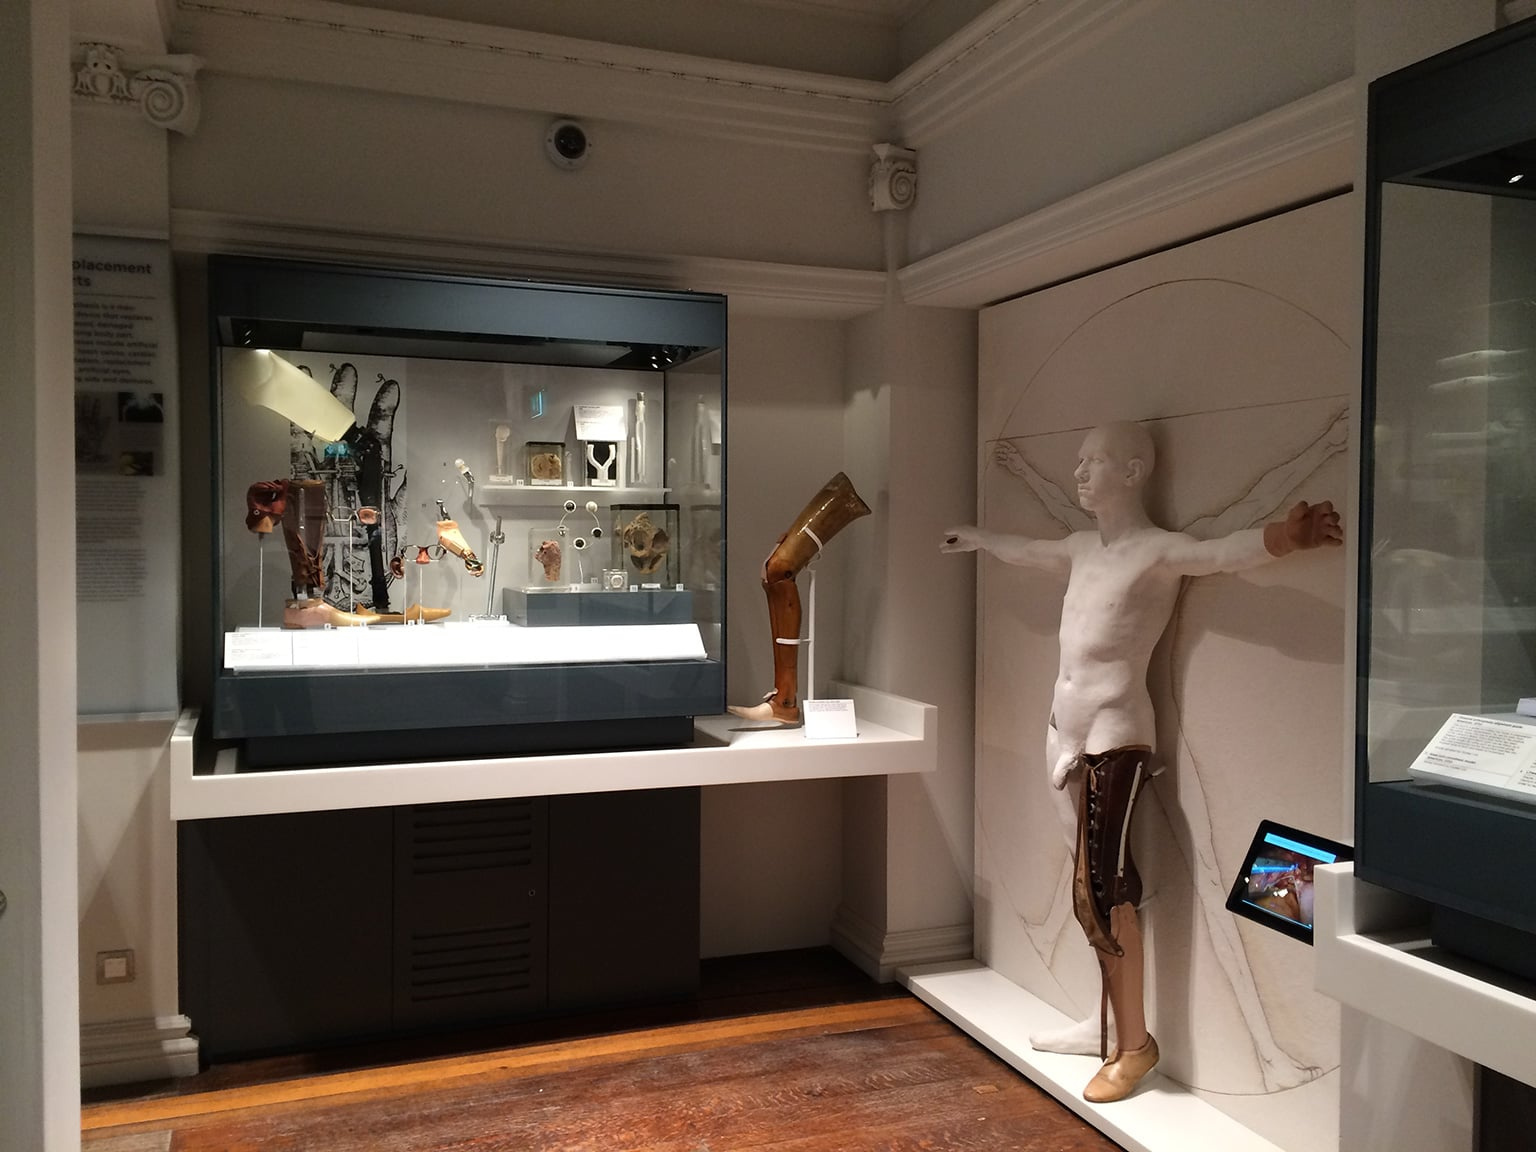 View of the Techniques and Technology area showing prosthetic Vitruvian man